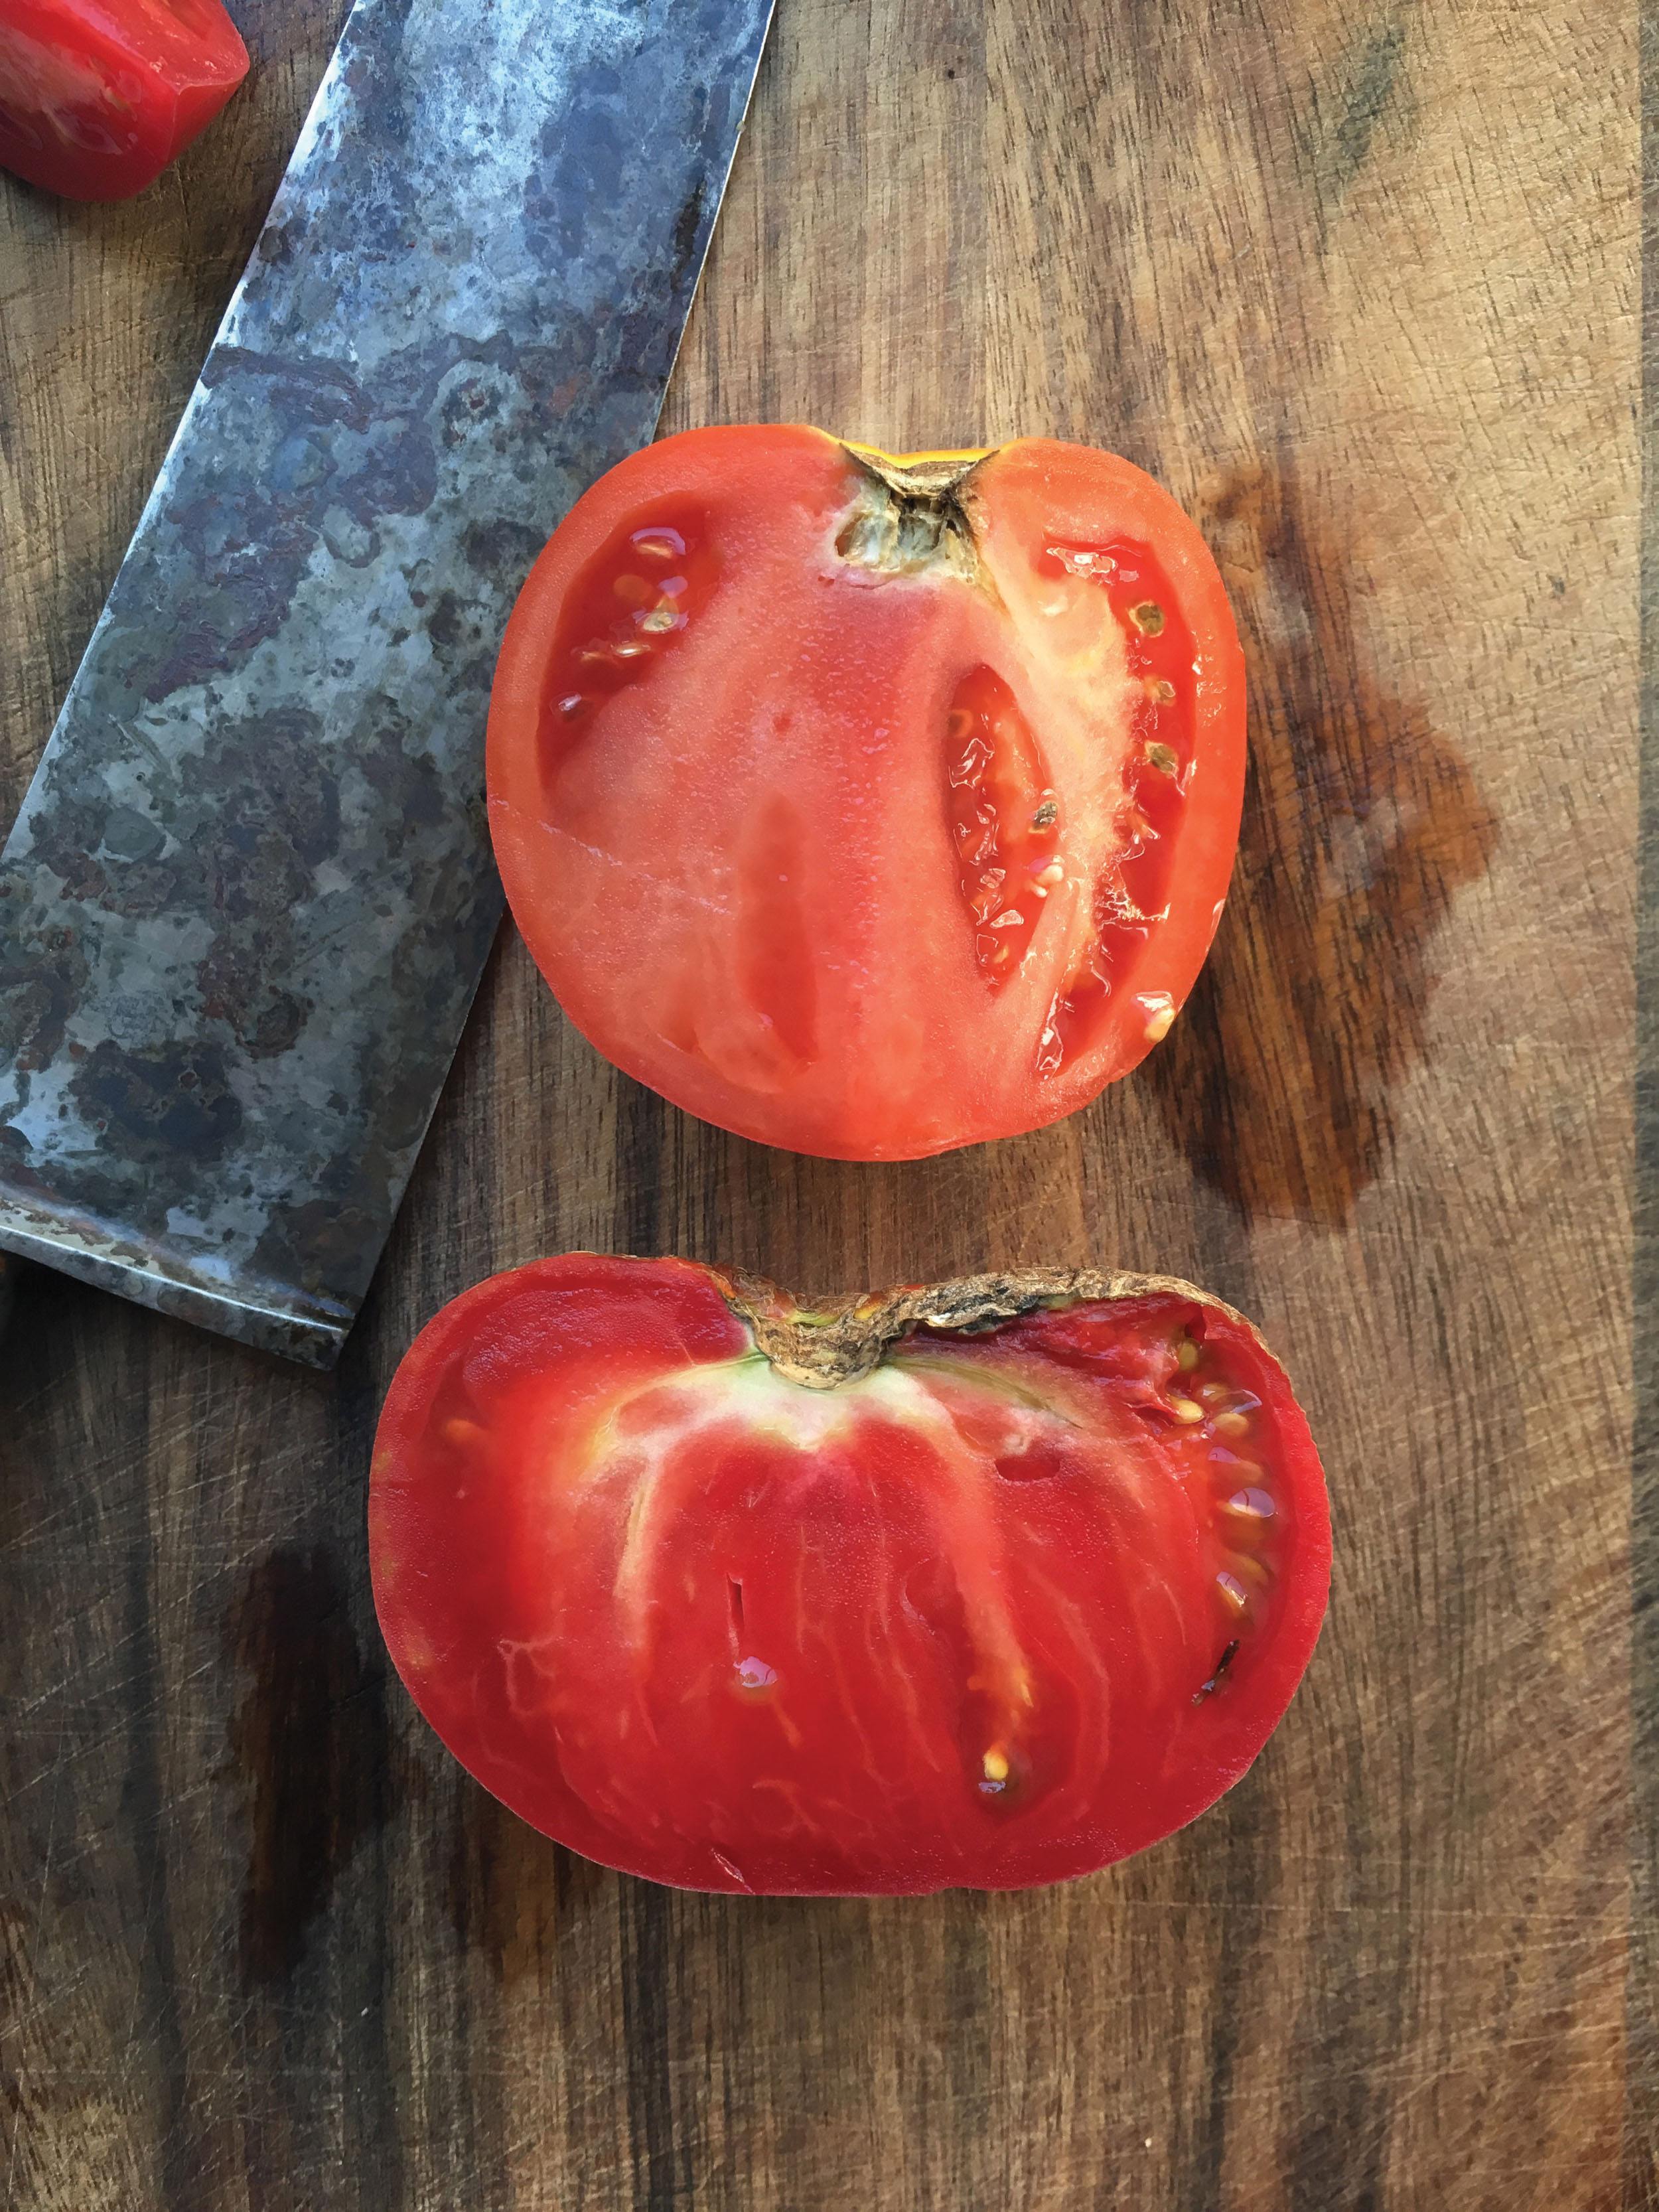 Top: a look inside a conventional tomato. bottom: the deep red sweet pulp of the heirloom fruit Aunt Lou.